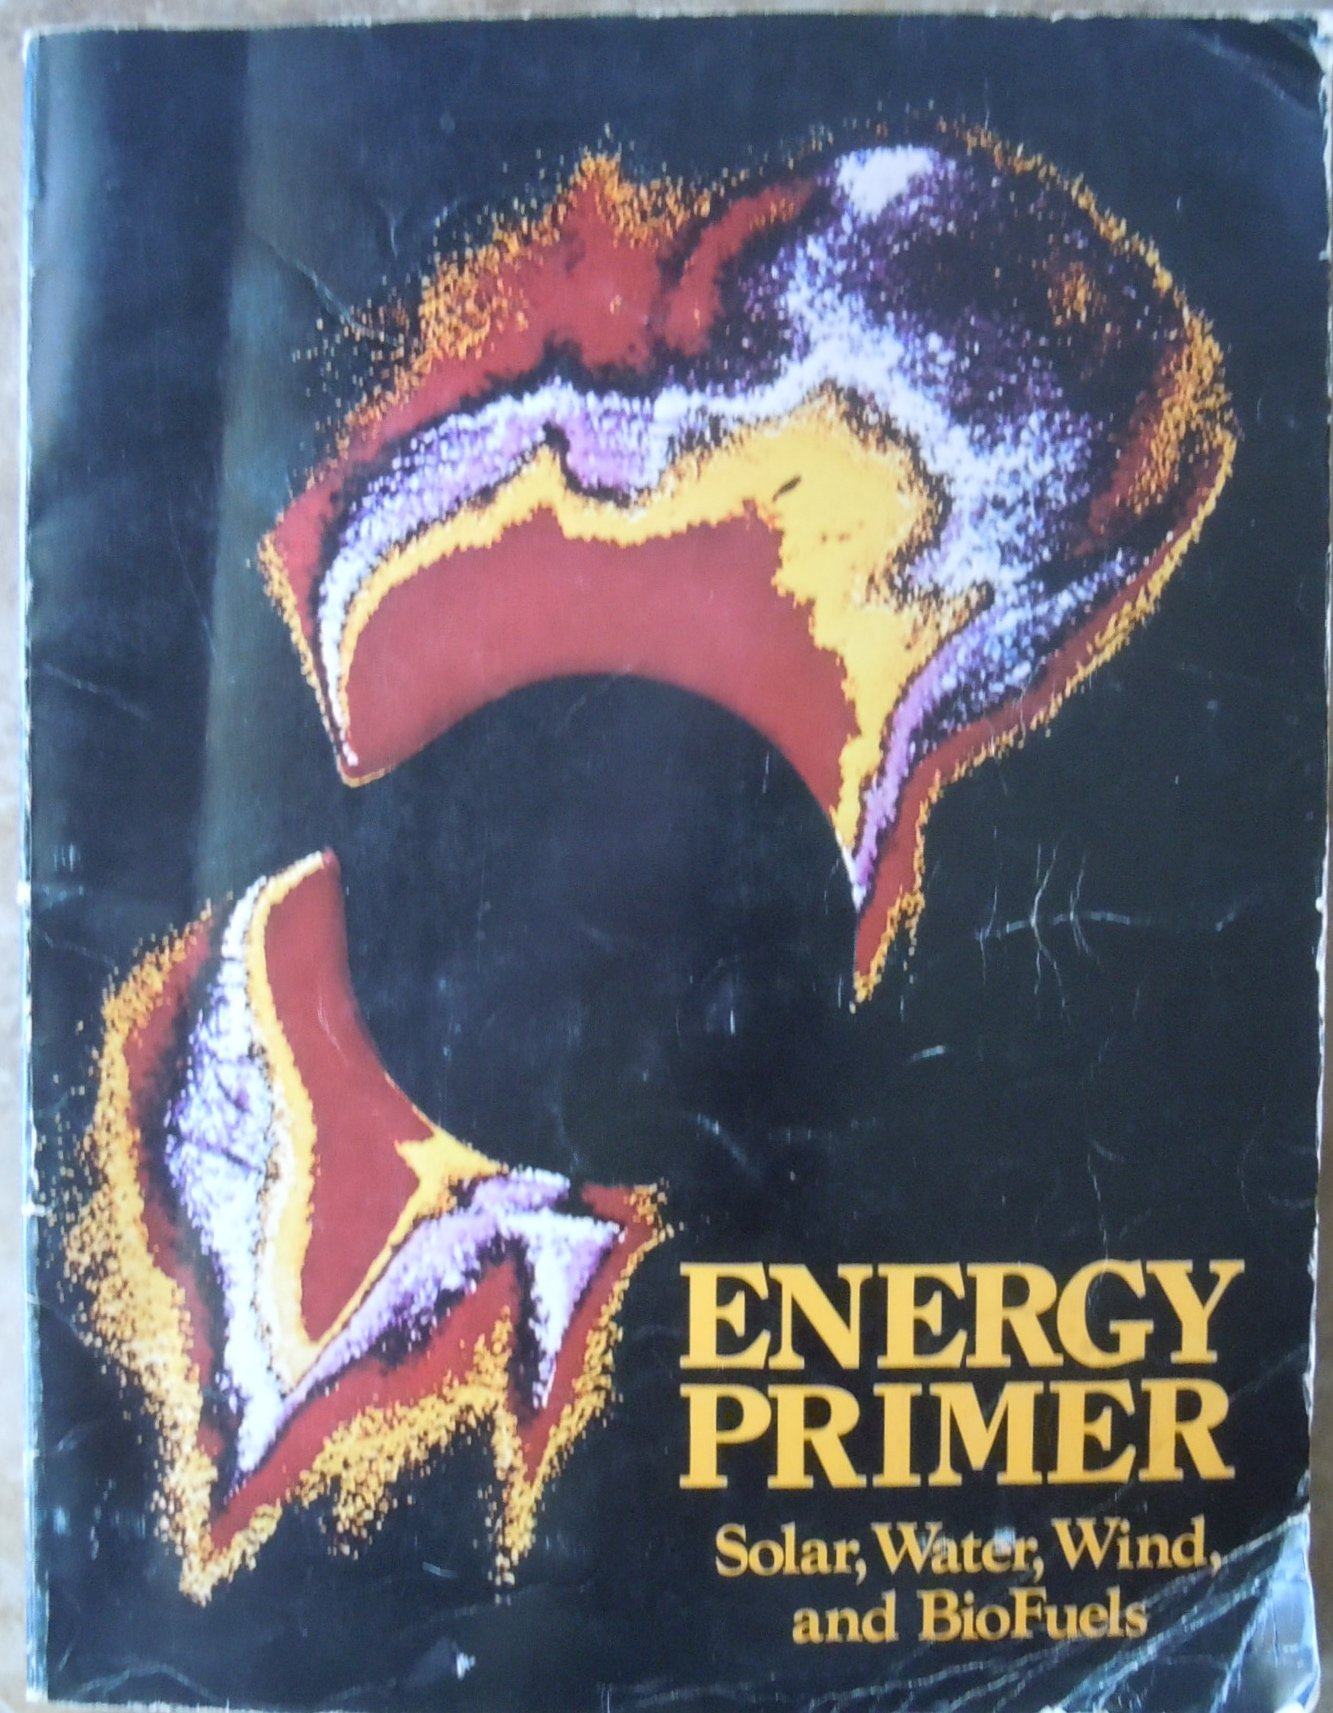 Energy primer, solar, water, wind, and biofuels, Merrill, Richard